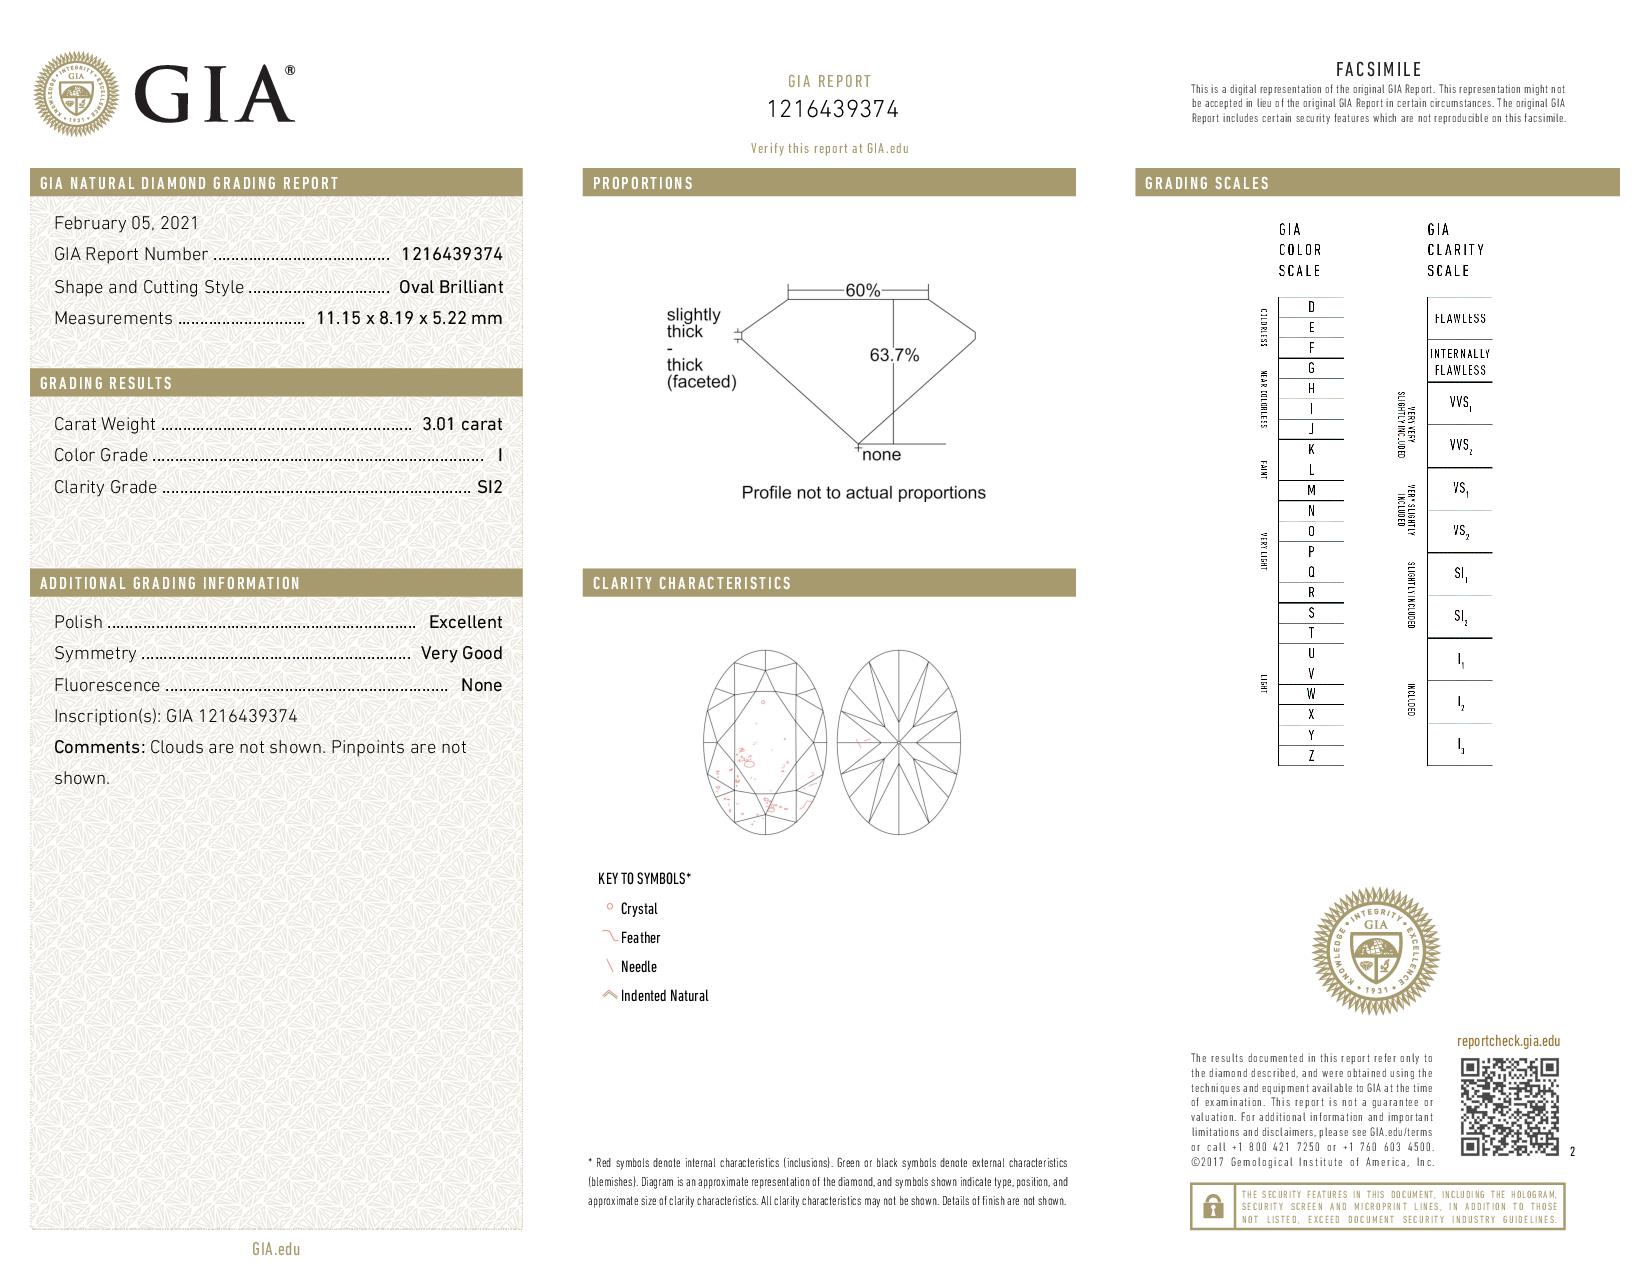 This is a 3.01 carat oval shape, I color, SI2 clarity natural diamond accompanied by a GIA grading report.